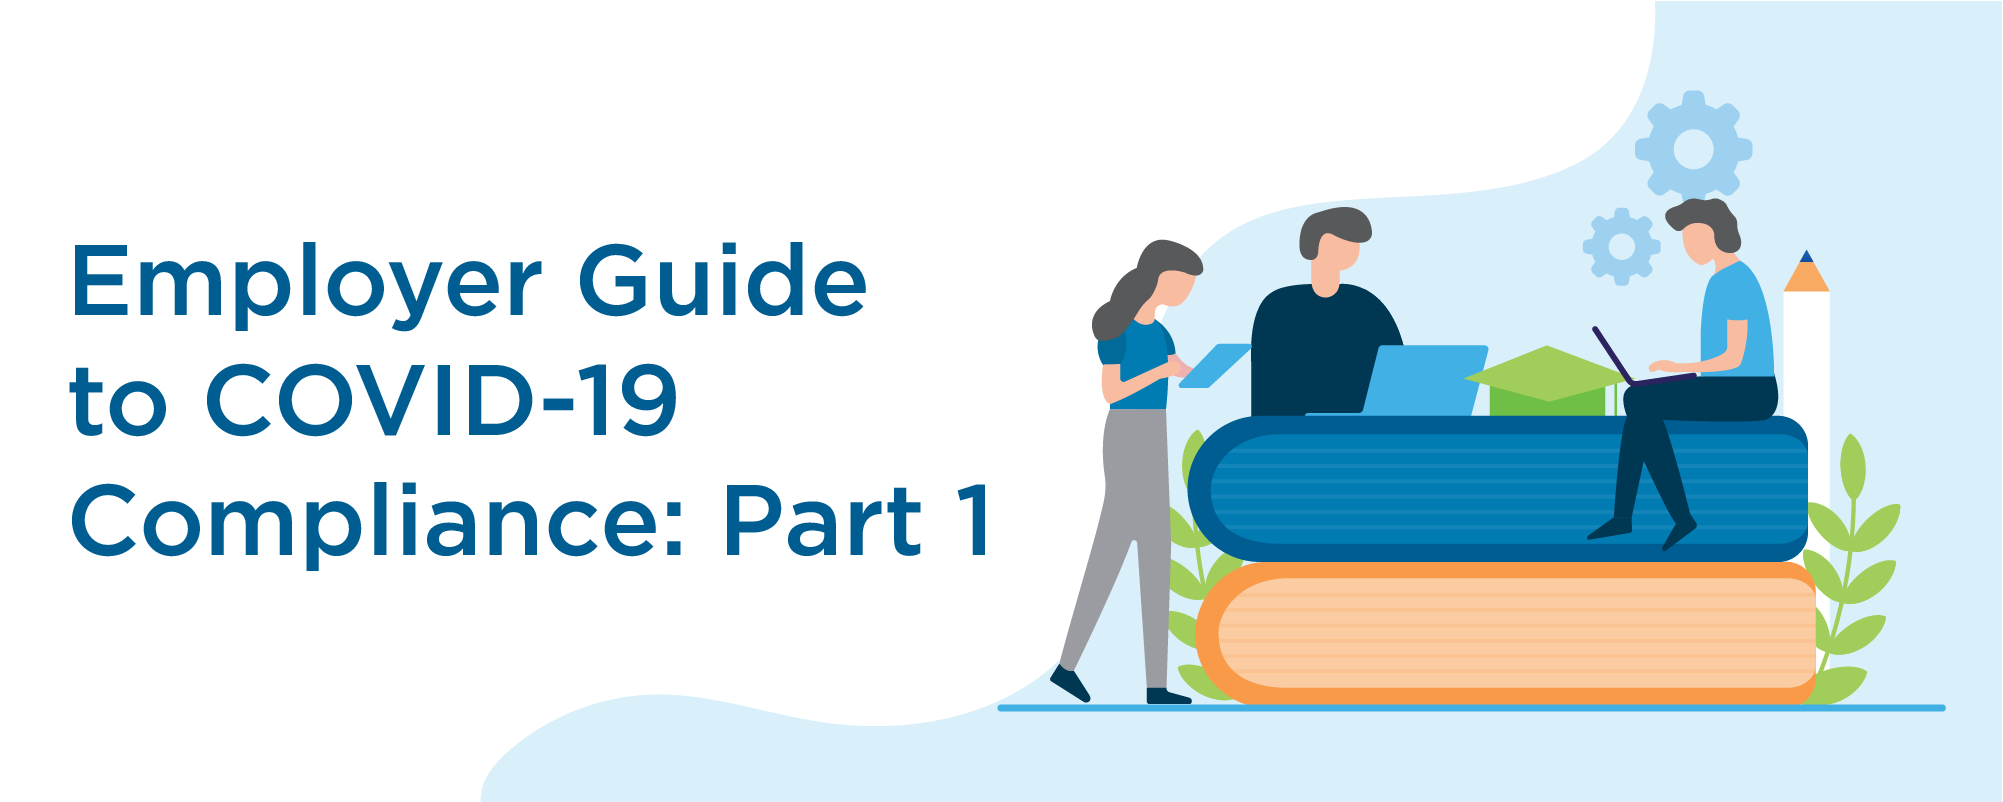 employer guide to covid 19 compliance part 1